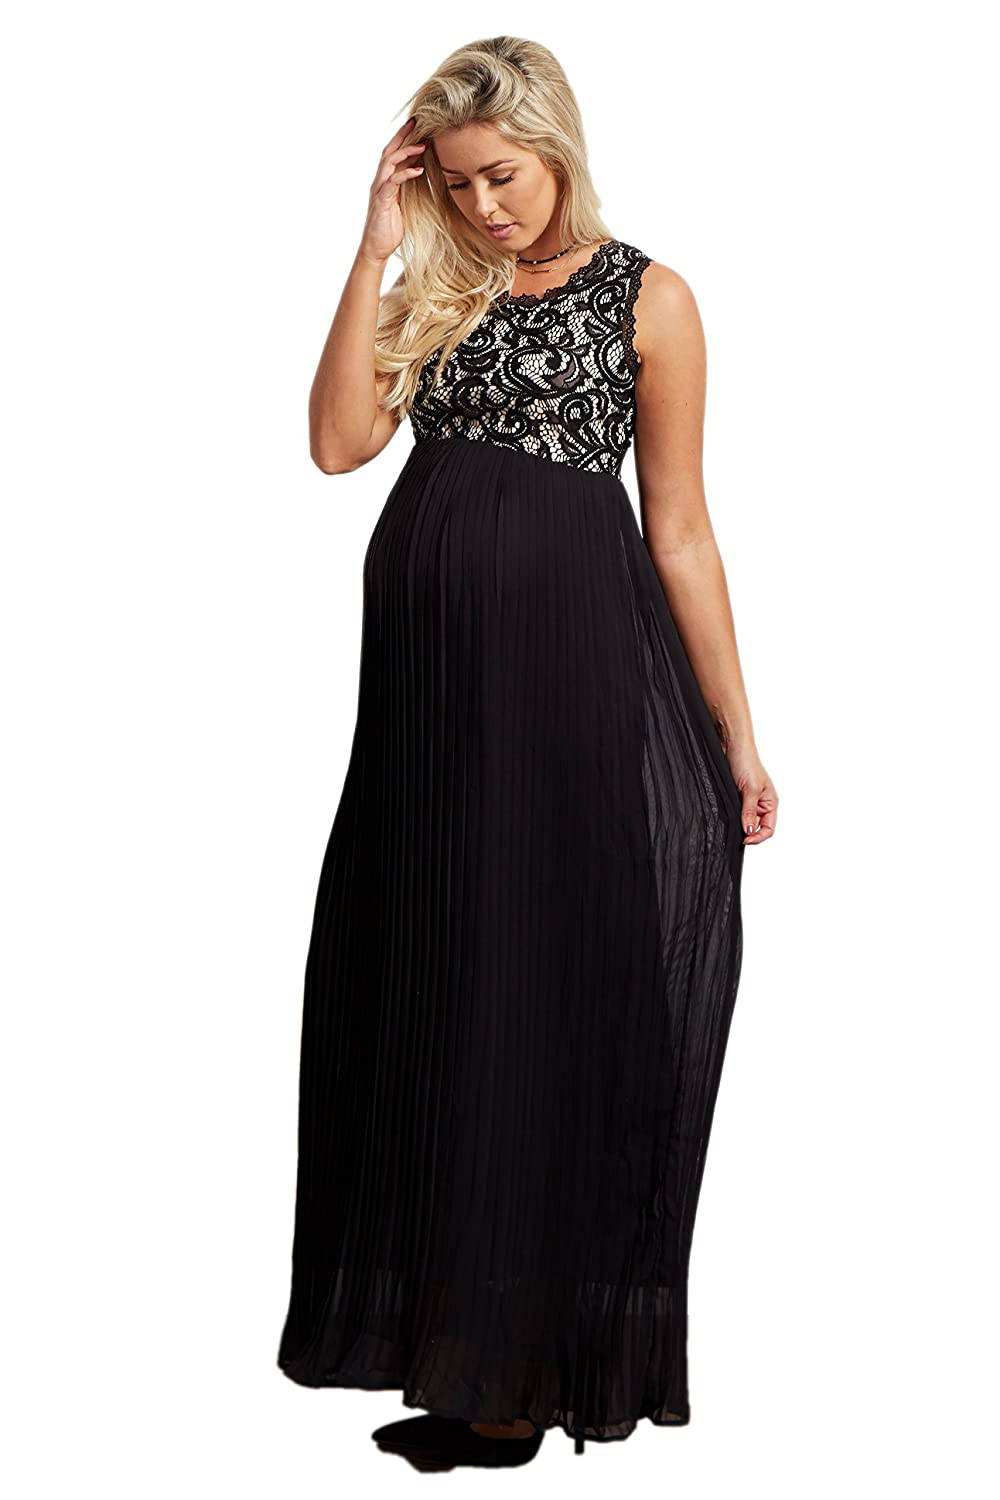 Pinkblush maternity pleated chiffon lace top maxi dress at amazon pinkblush maternity pleated chiffon lace top maxi dress at amazon womens clothing store ombrellifo Image collections